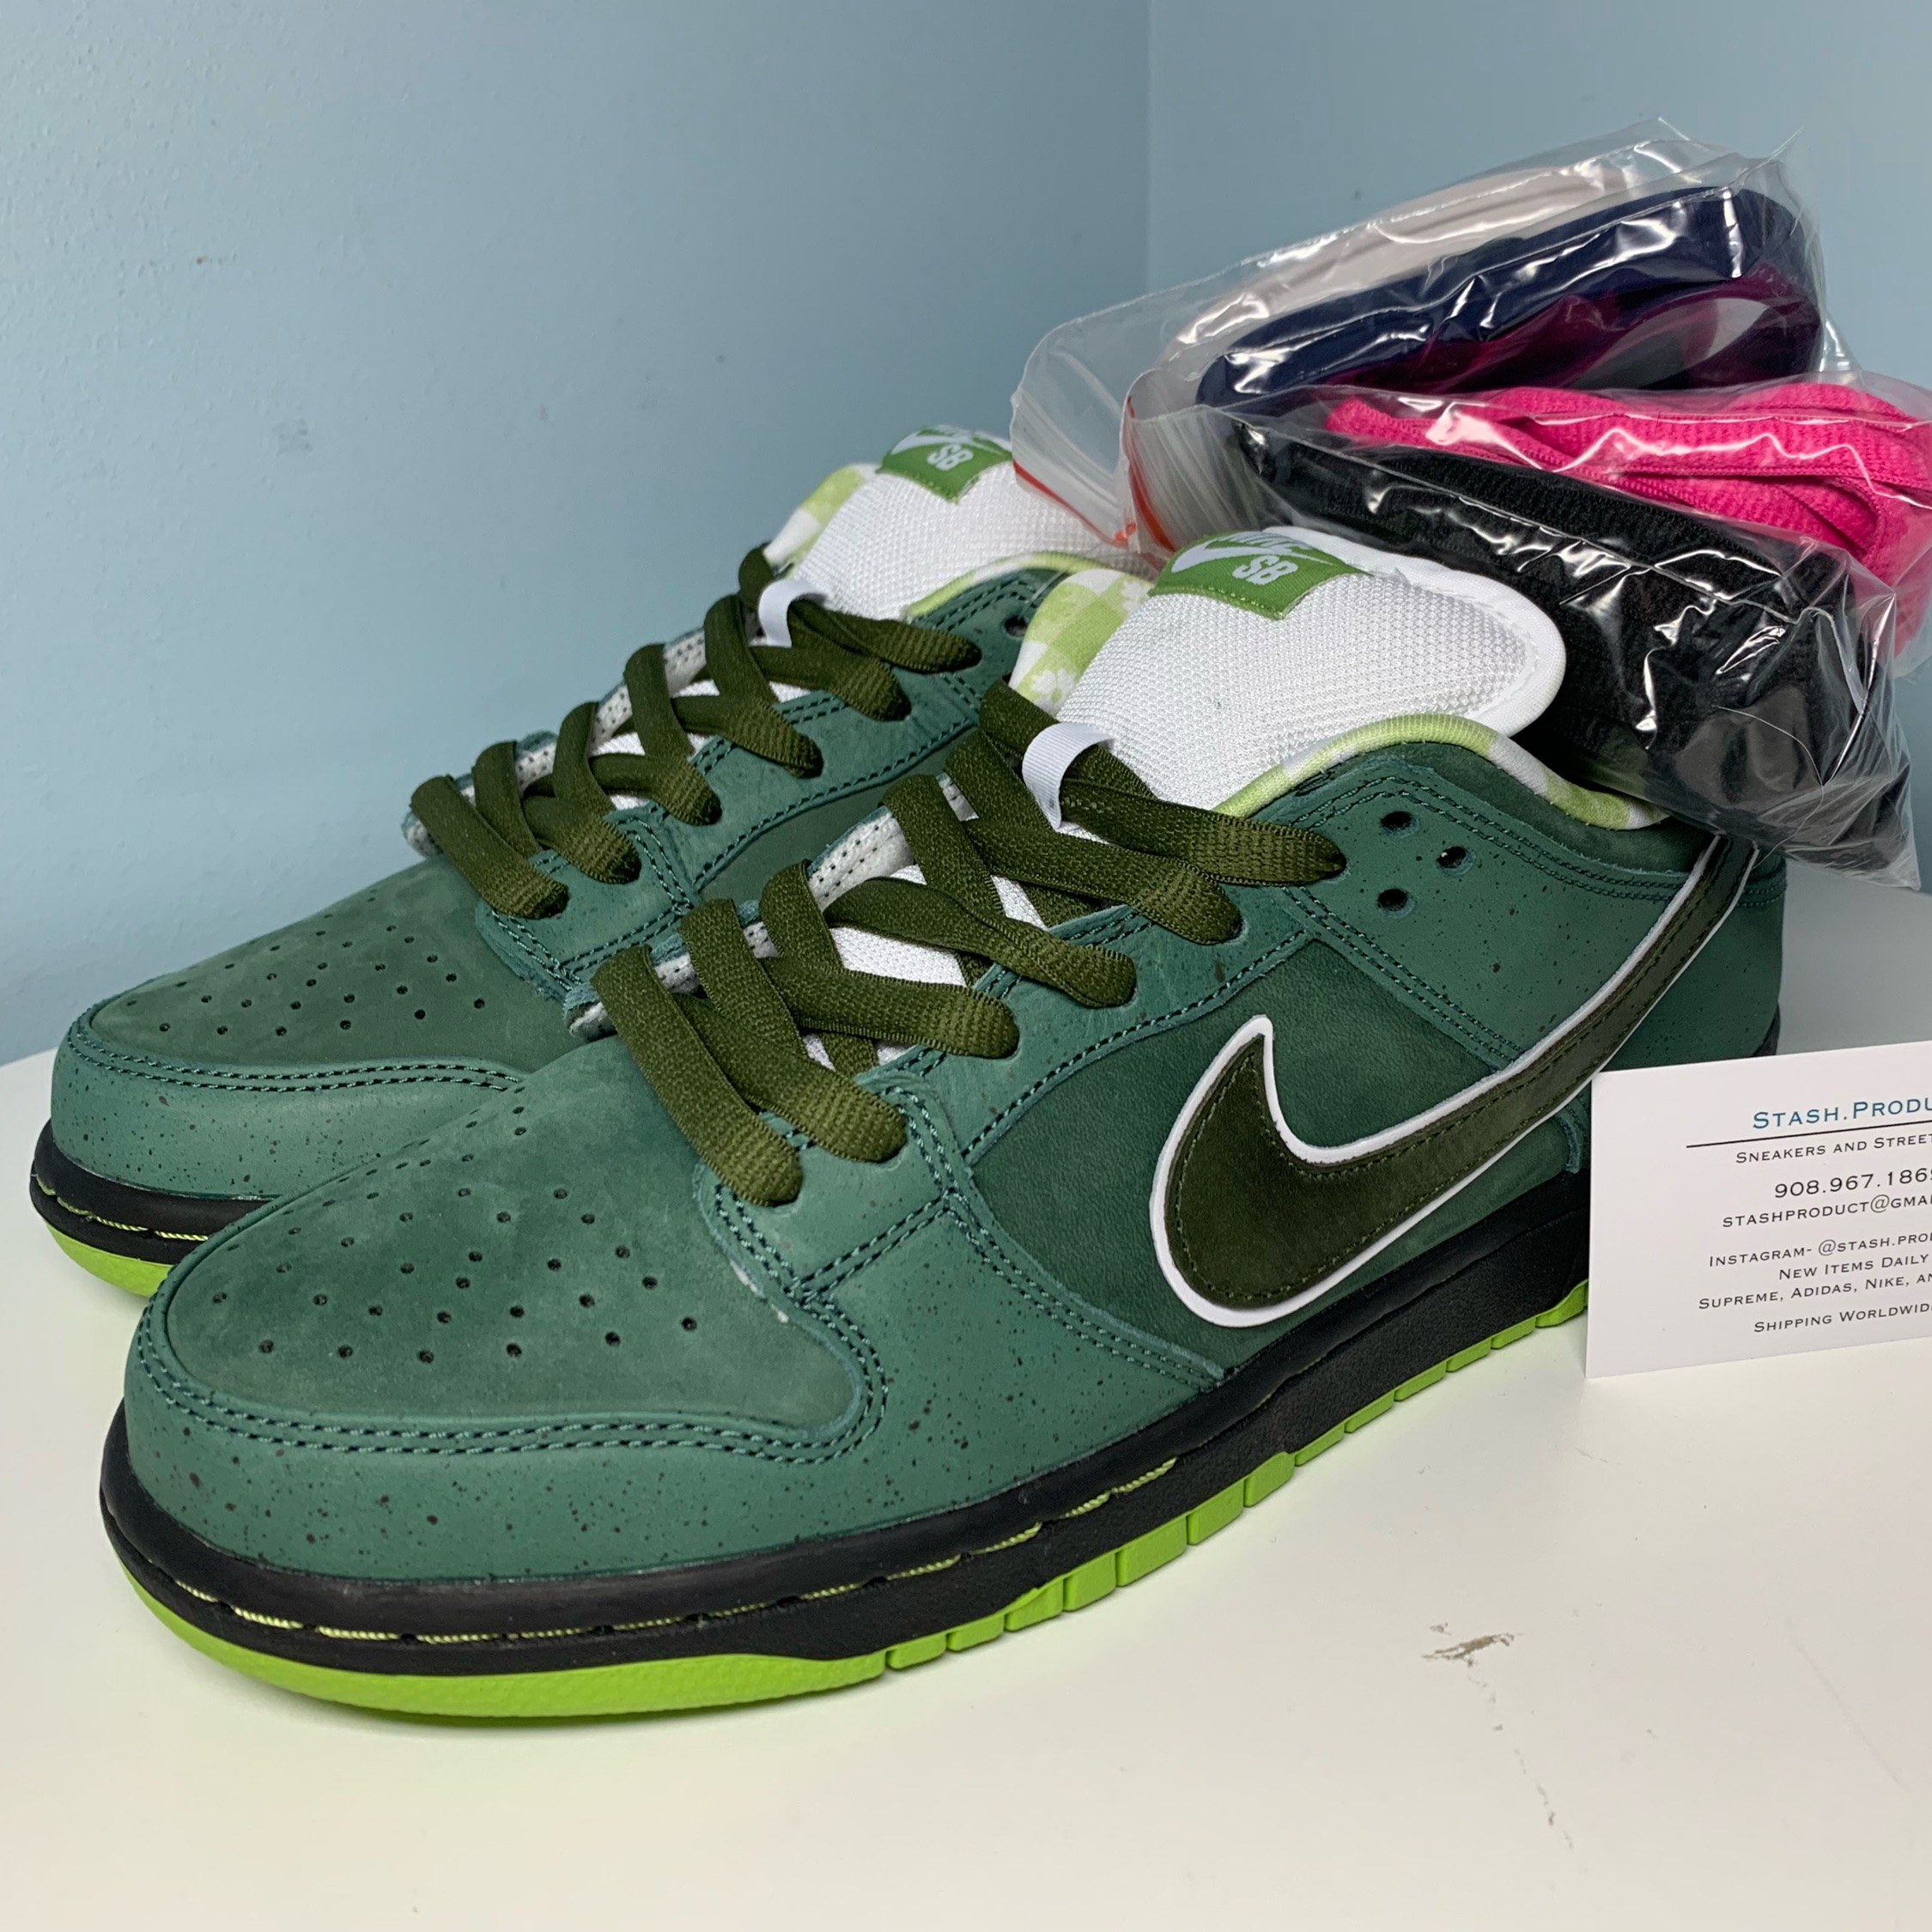 Concepts Nike Sb Dunk Low Green Lobster